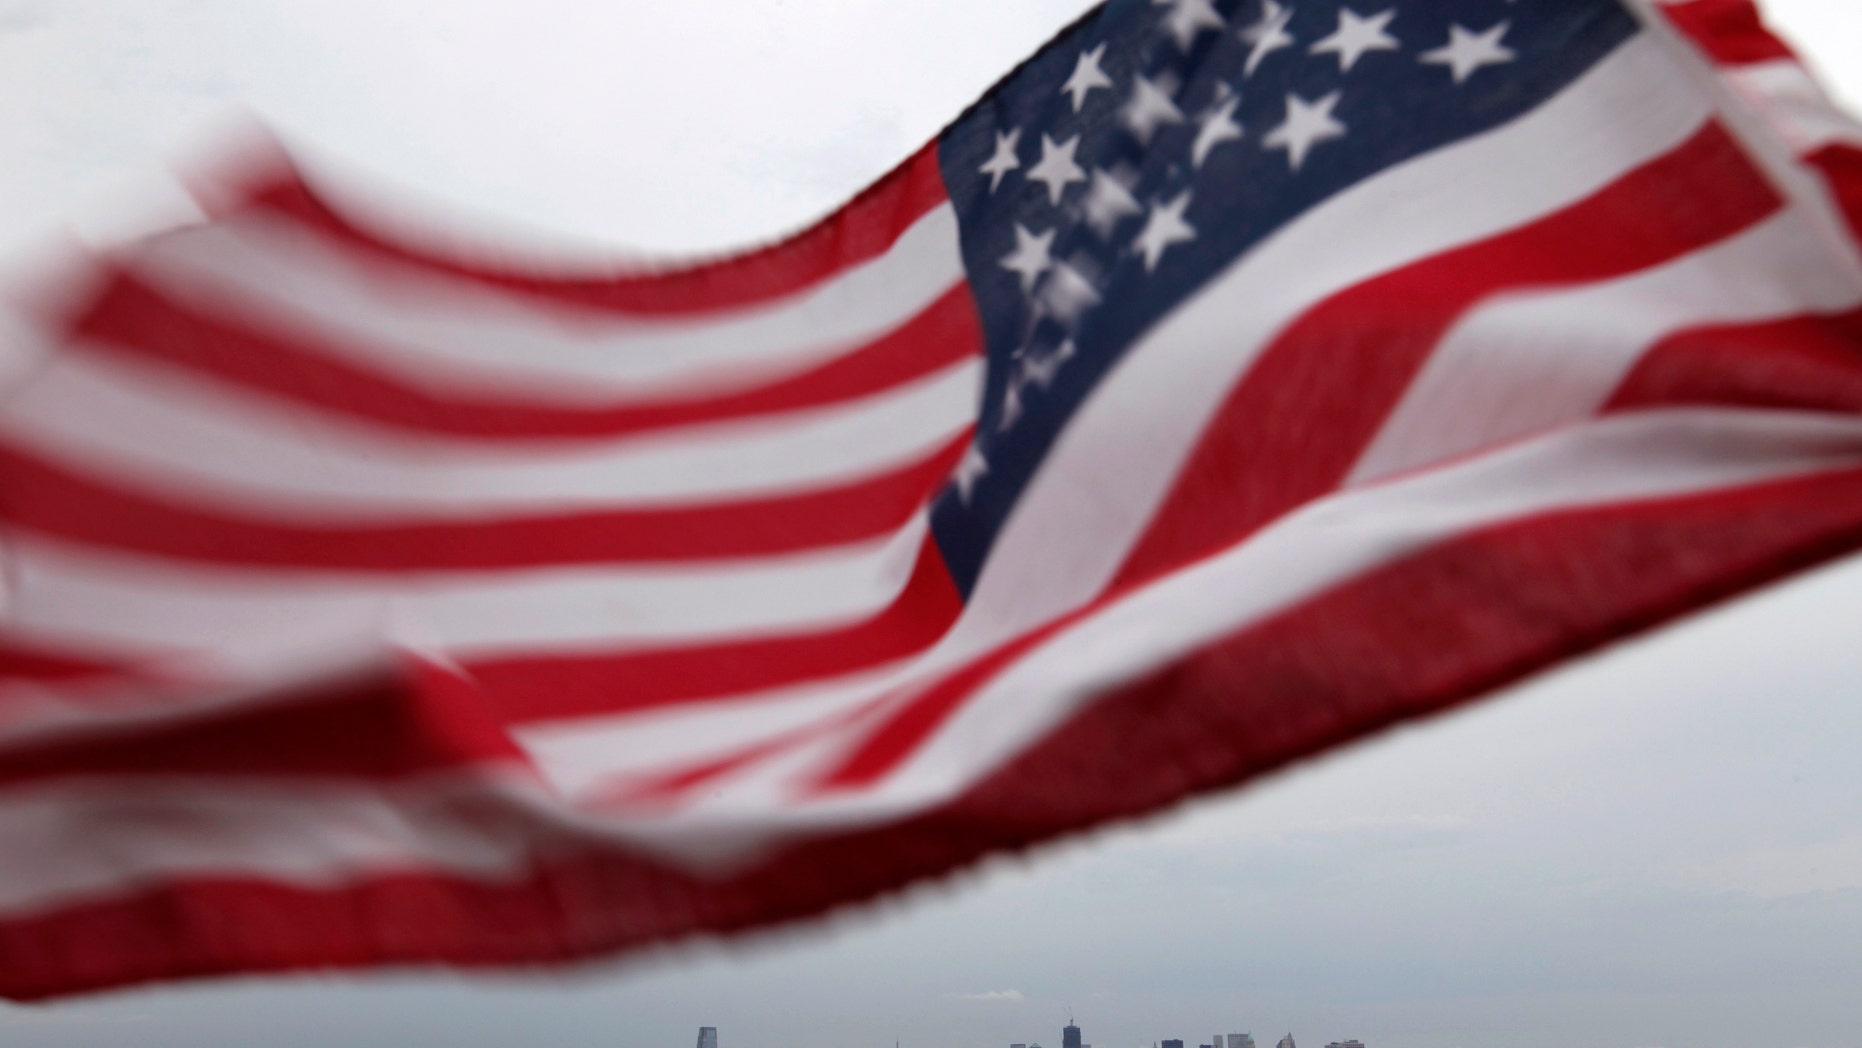 A U.S. flag flutters over top of the skyline of New York (R) and Jersey City (L), as seen from Bayonne, New Jersey, August 6, 2011. New York will mark the 10th anniversary of the attack on the World Trade Center with ceremonies on September 11. REUTERS/Gary Hershorn (UNITED STATES - Tags: CITYSCAPE DISASTER IMAGES OF THE DAY)